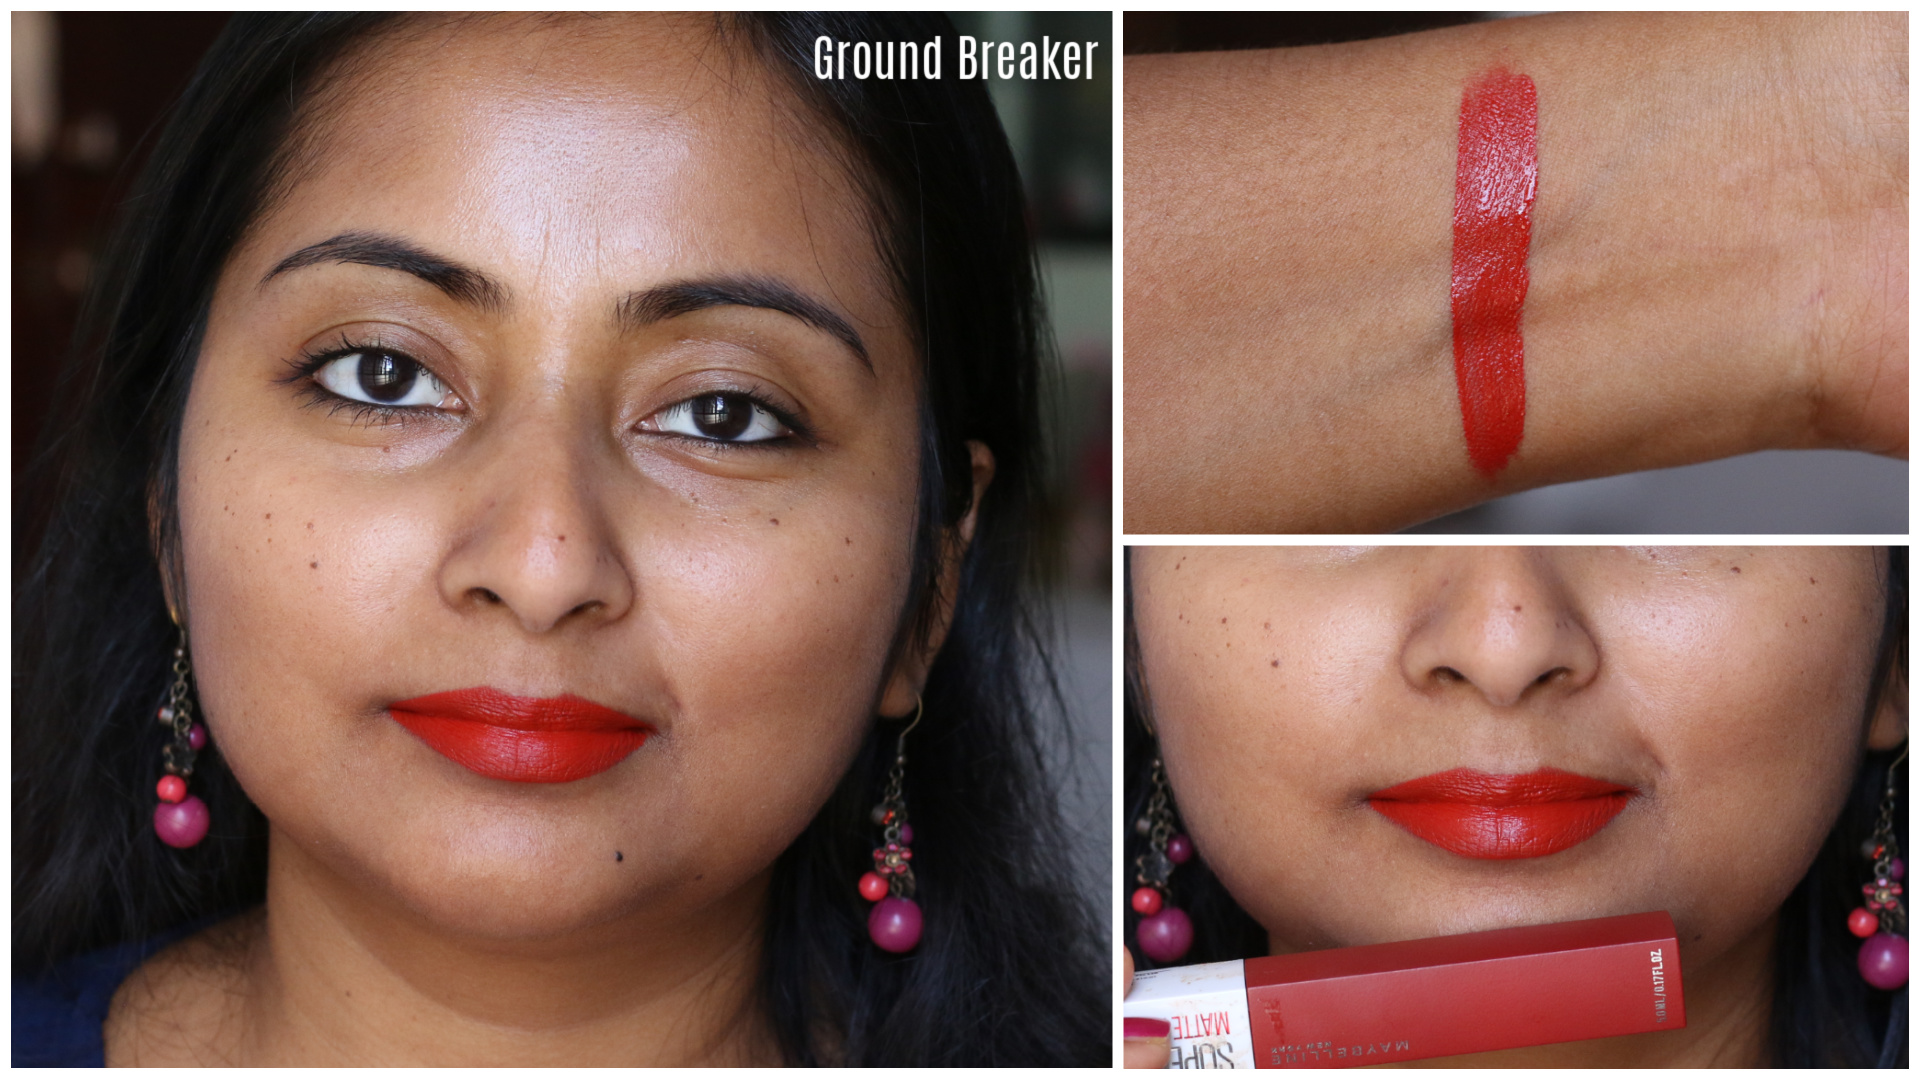 maybelline superstay ground breaker